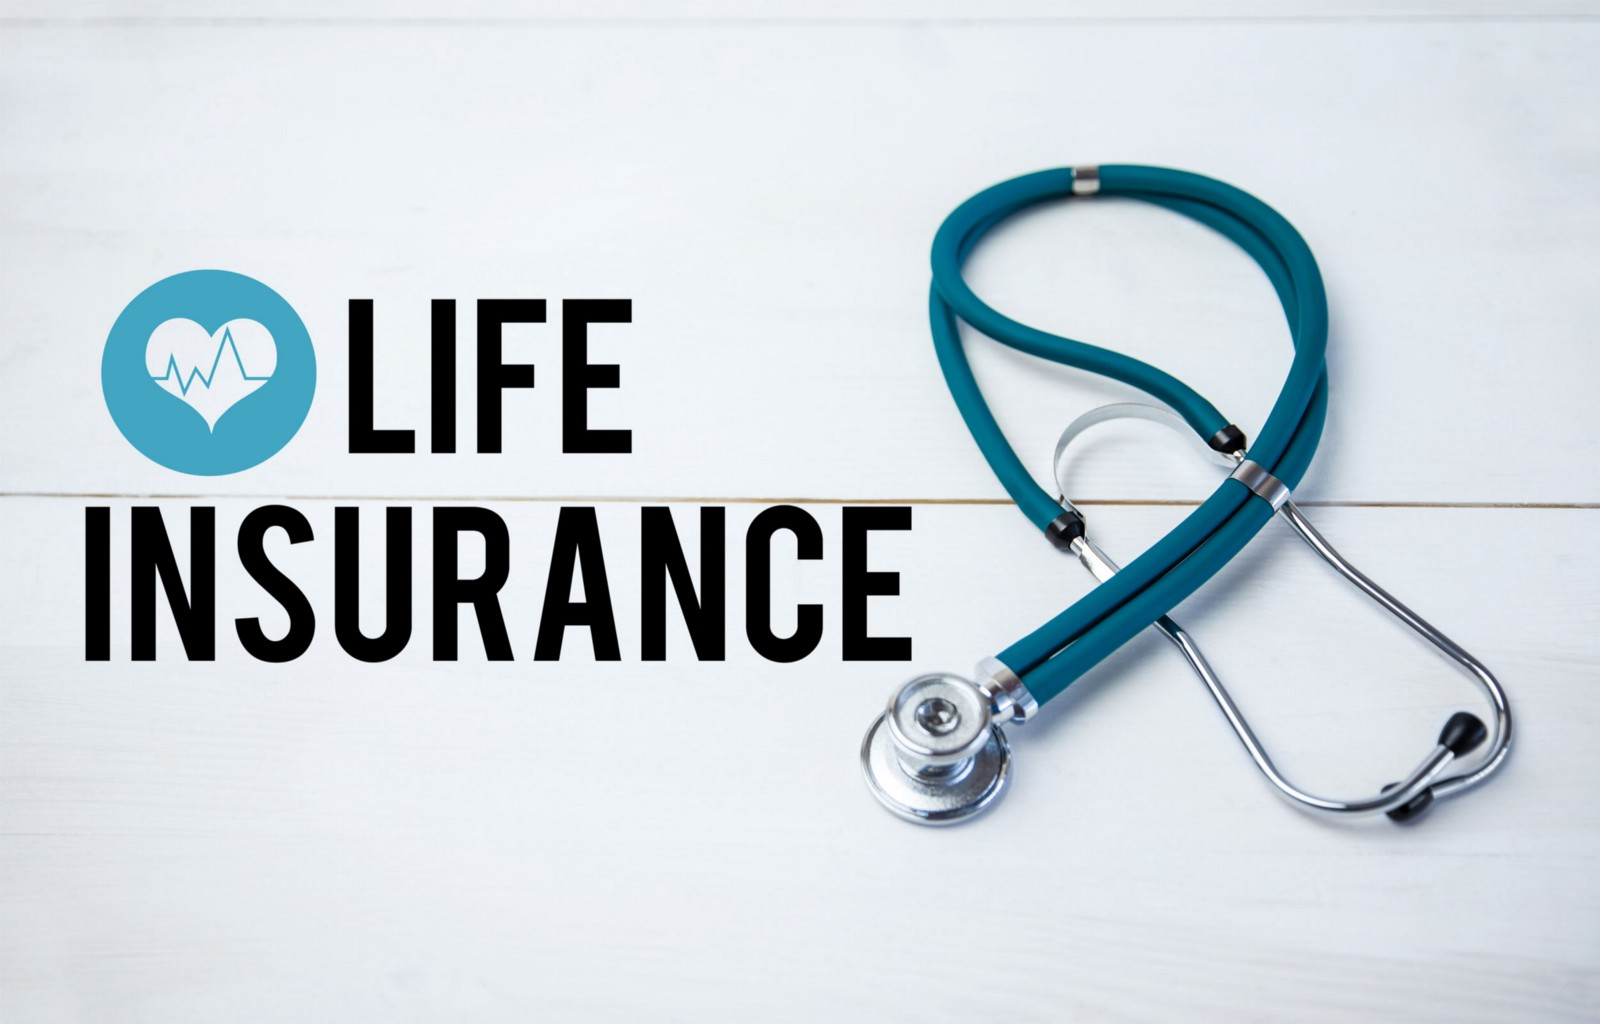 Whatu0027s The Big Deal About Online Life Insurance Quotes? U2014 Blake Insurance  Group LLC